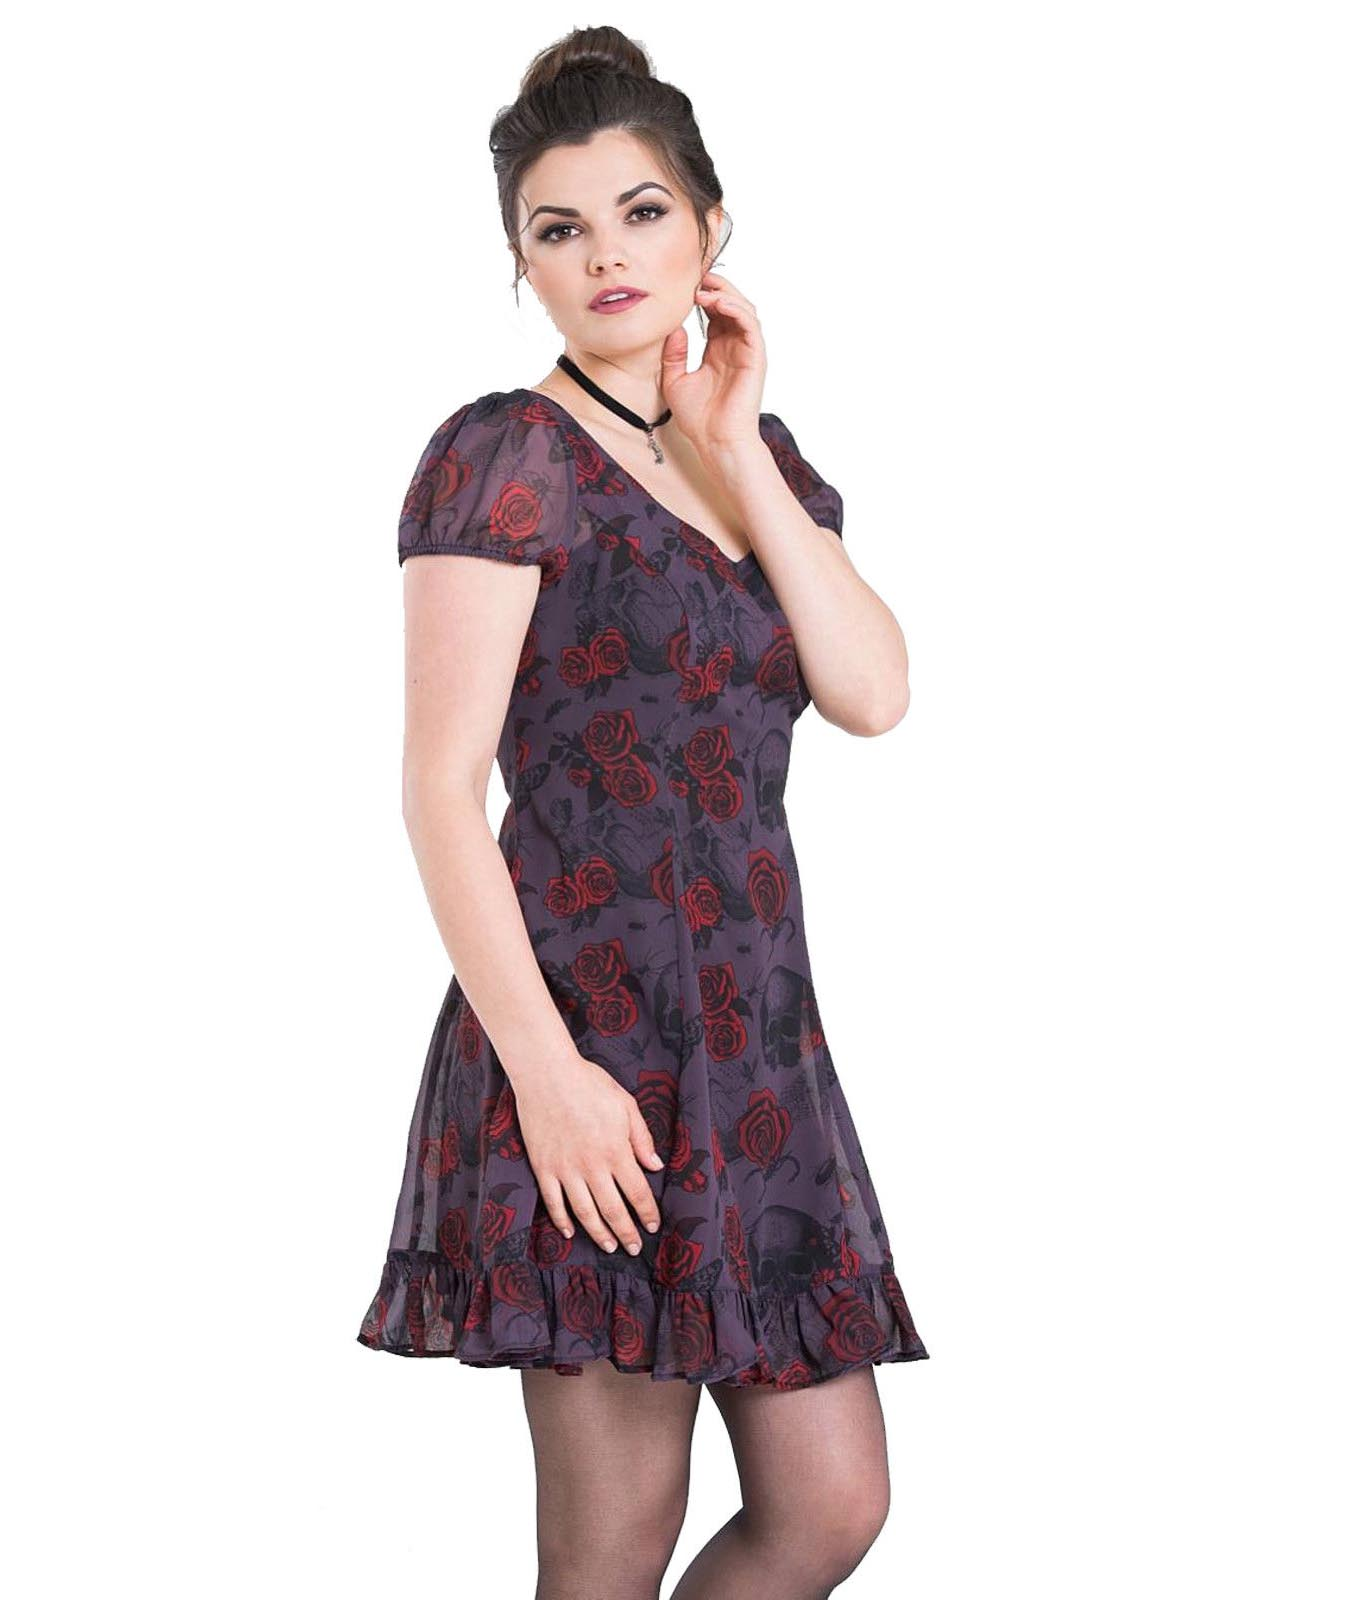 Hell-Bunny-Goth-Floaty-Mini-Dress-BUGS-amp-ROSES-Skulls-Butterfly-Purple-All-Sizes thumbnail 45